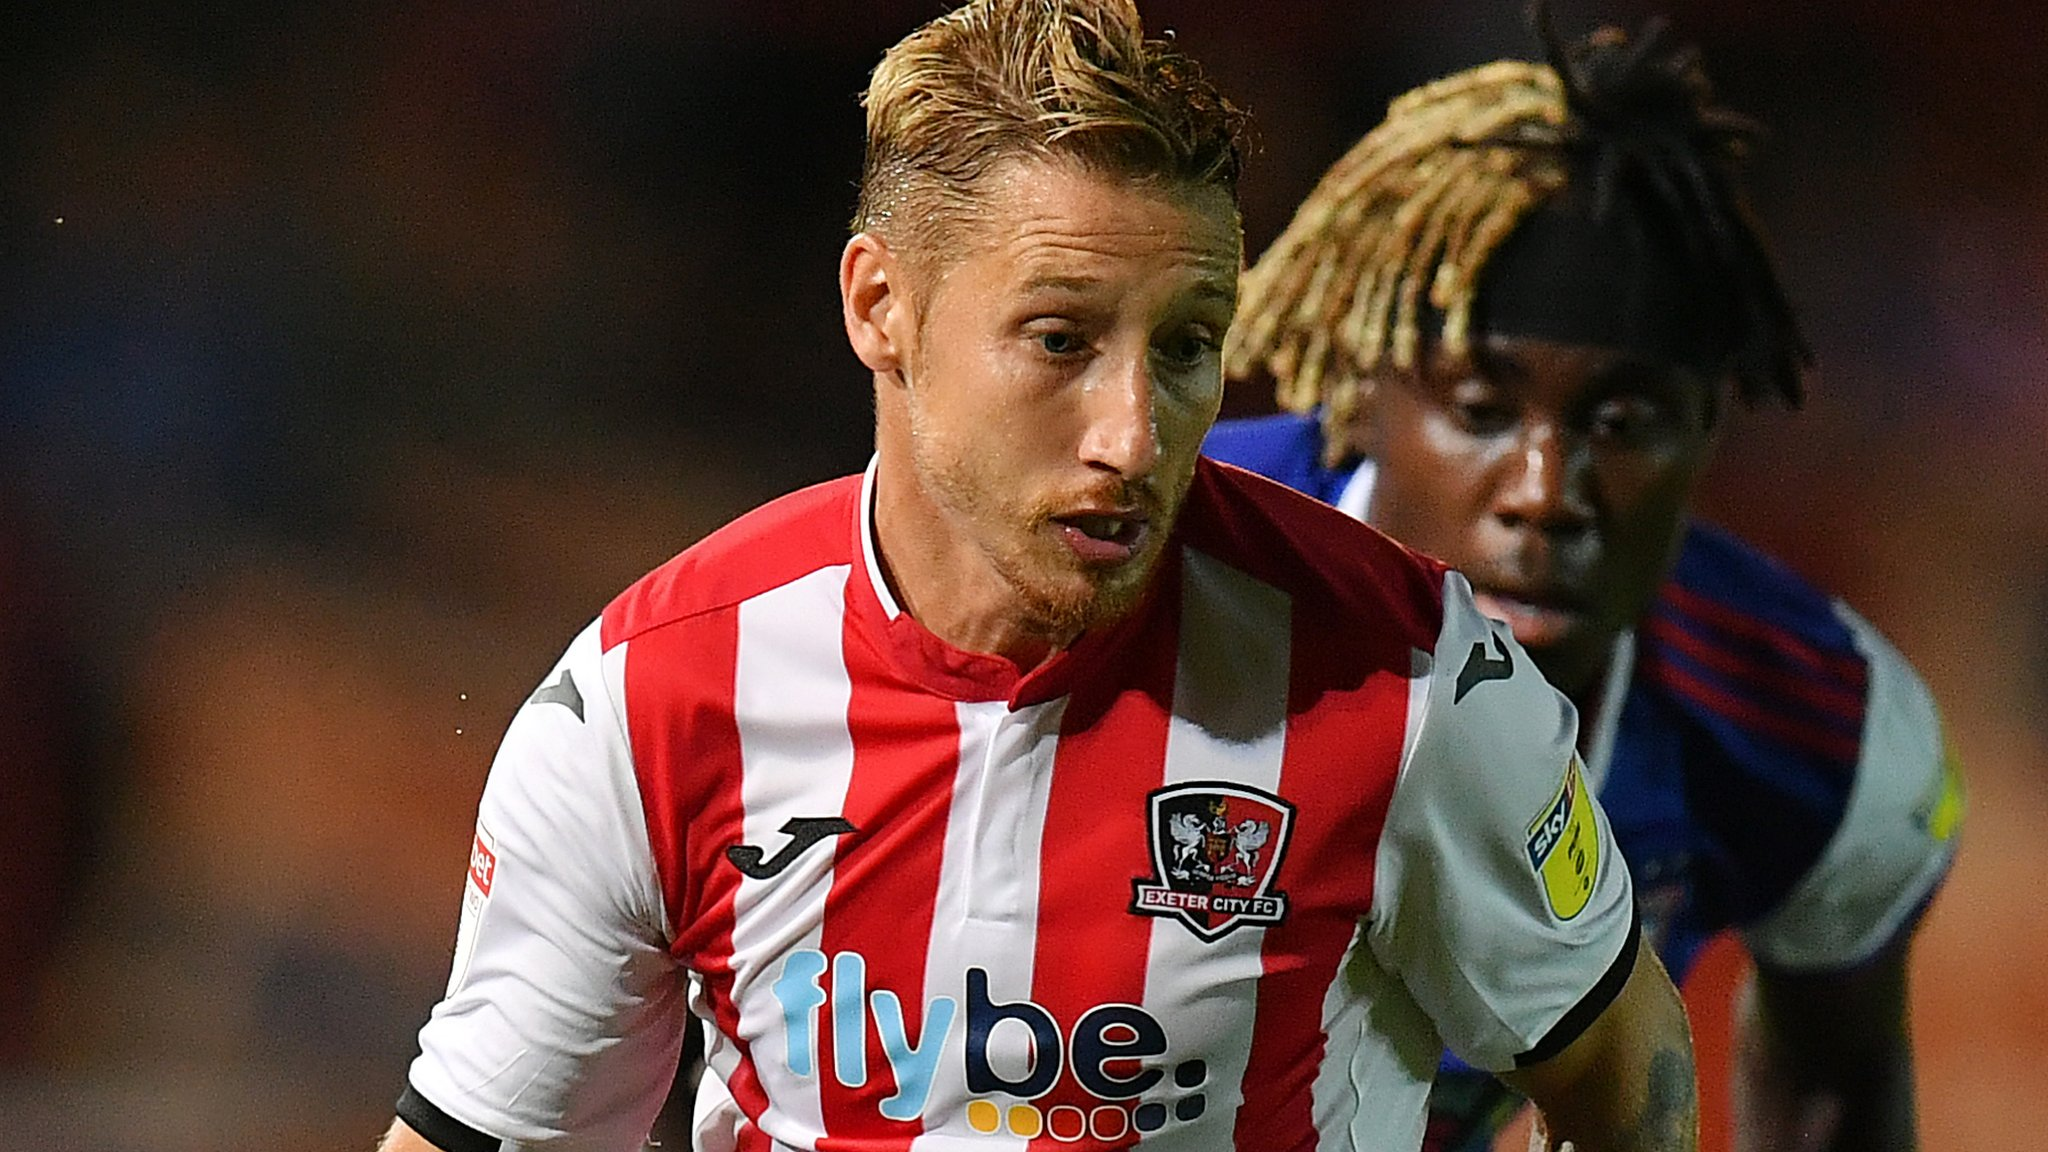 Lee Martin: Exeter City boss praises midfielder after first goal for club